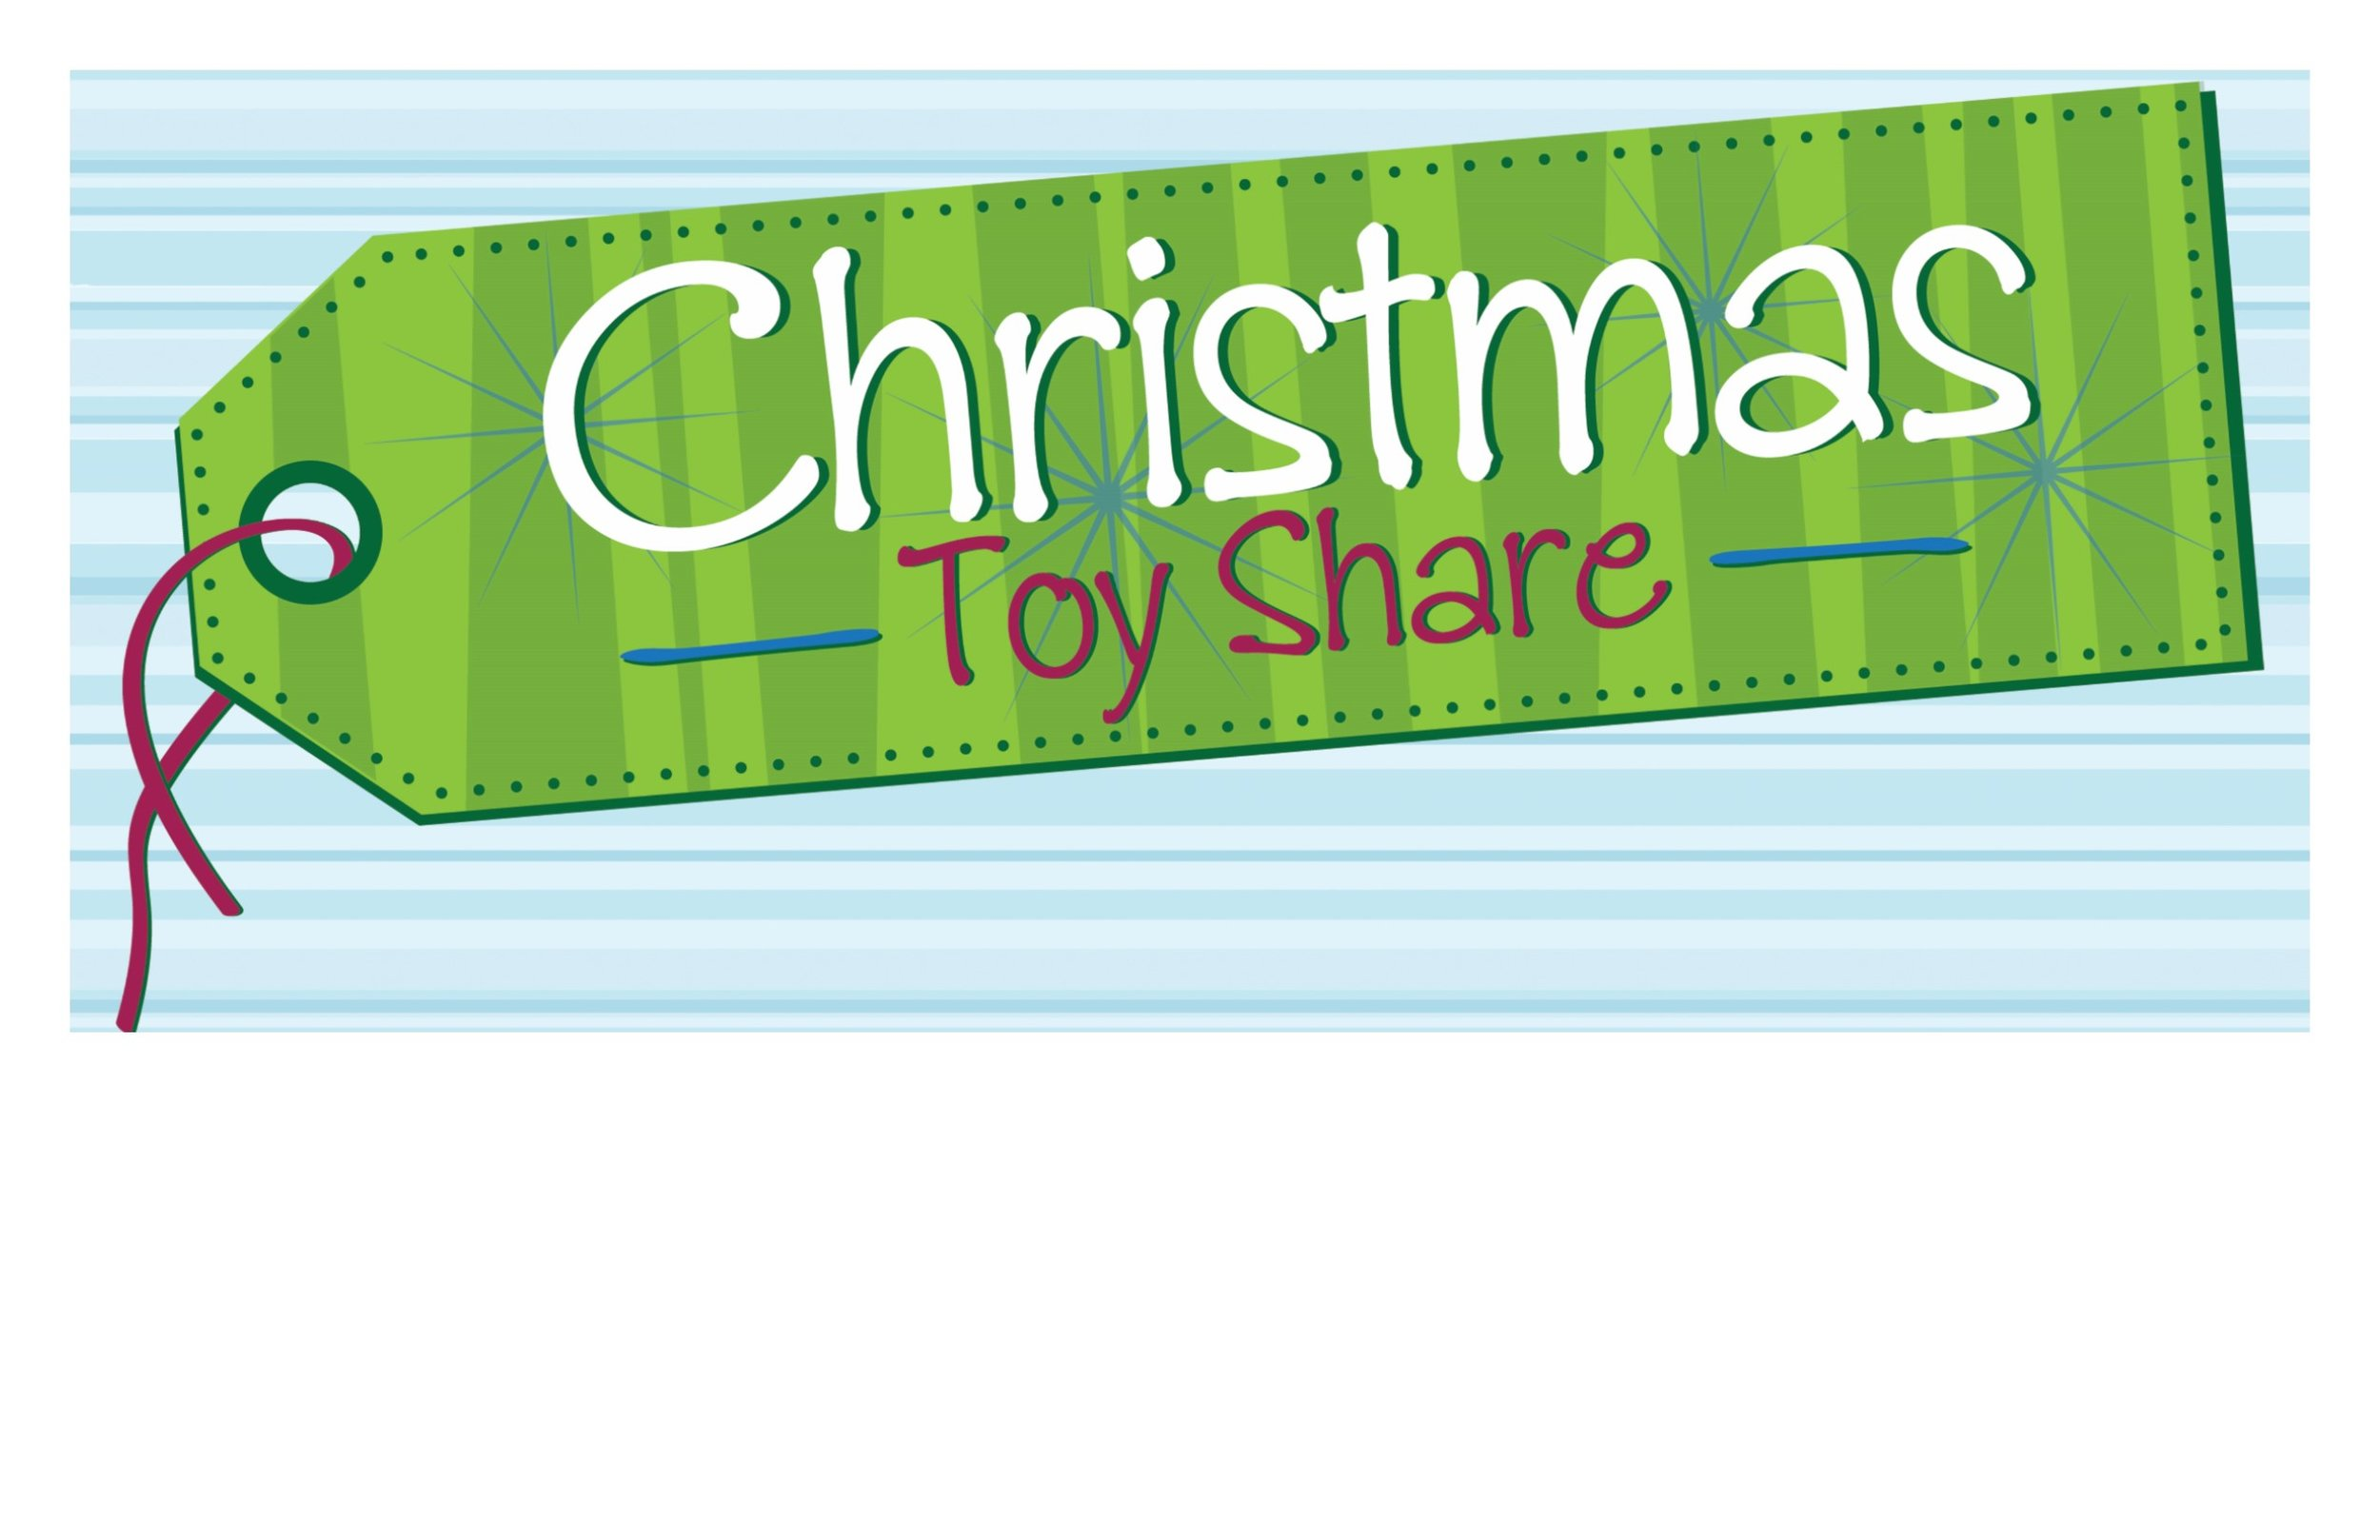 Toy Share is open to help serve those in our community during the Christmas season. To learn more click on the icon above.